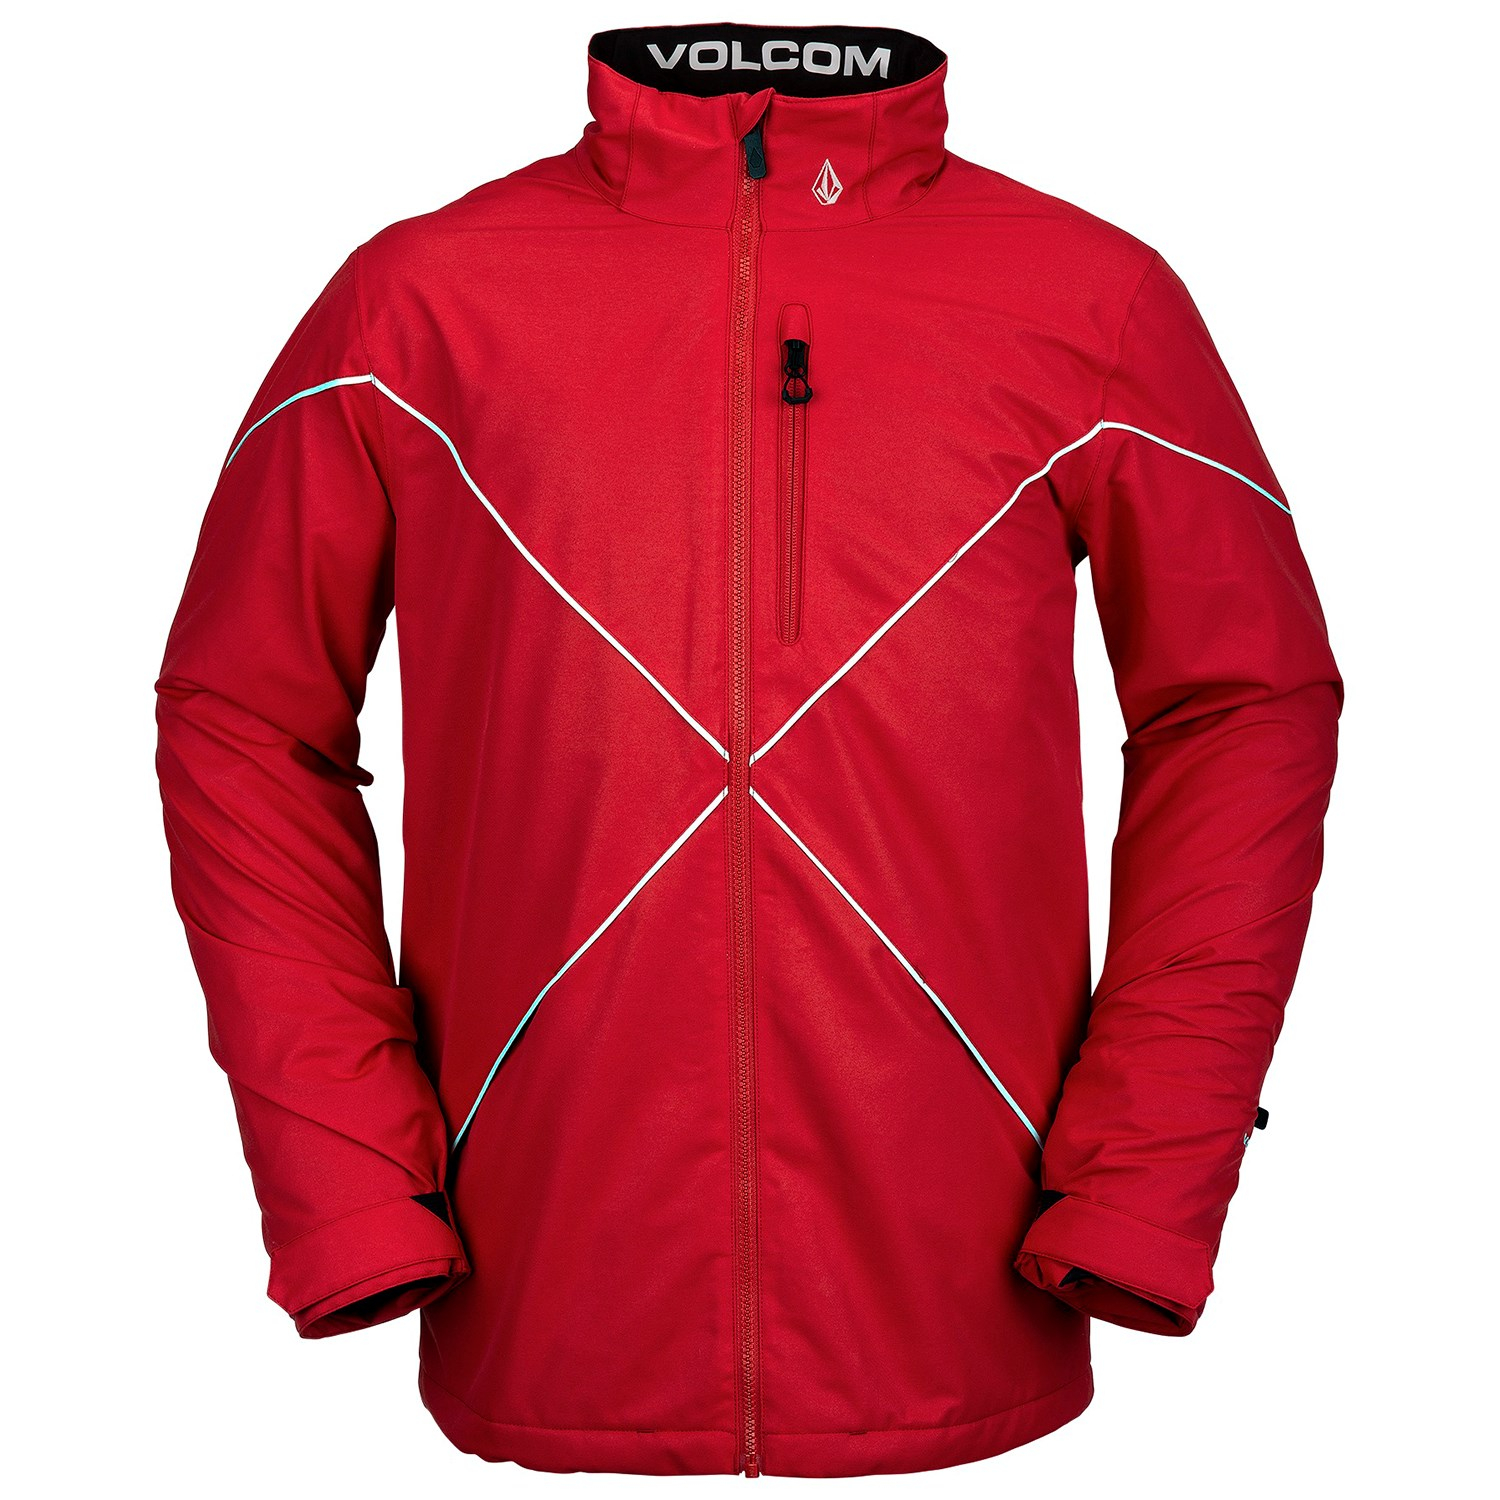 Giacca Snowboard Volcom No Hood X Jacket Red '21